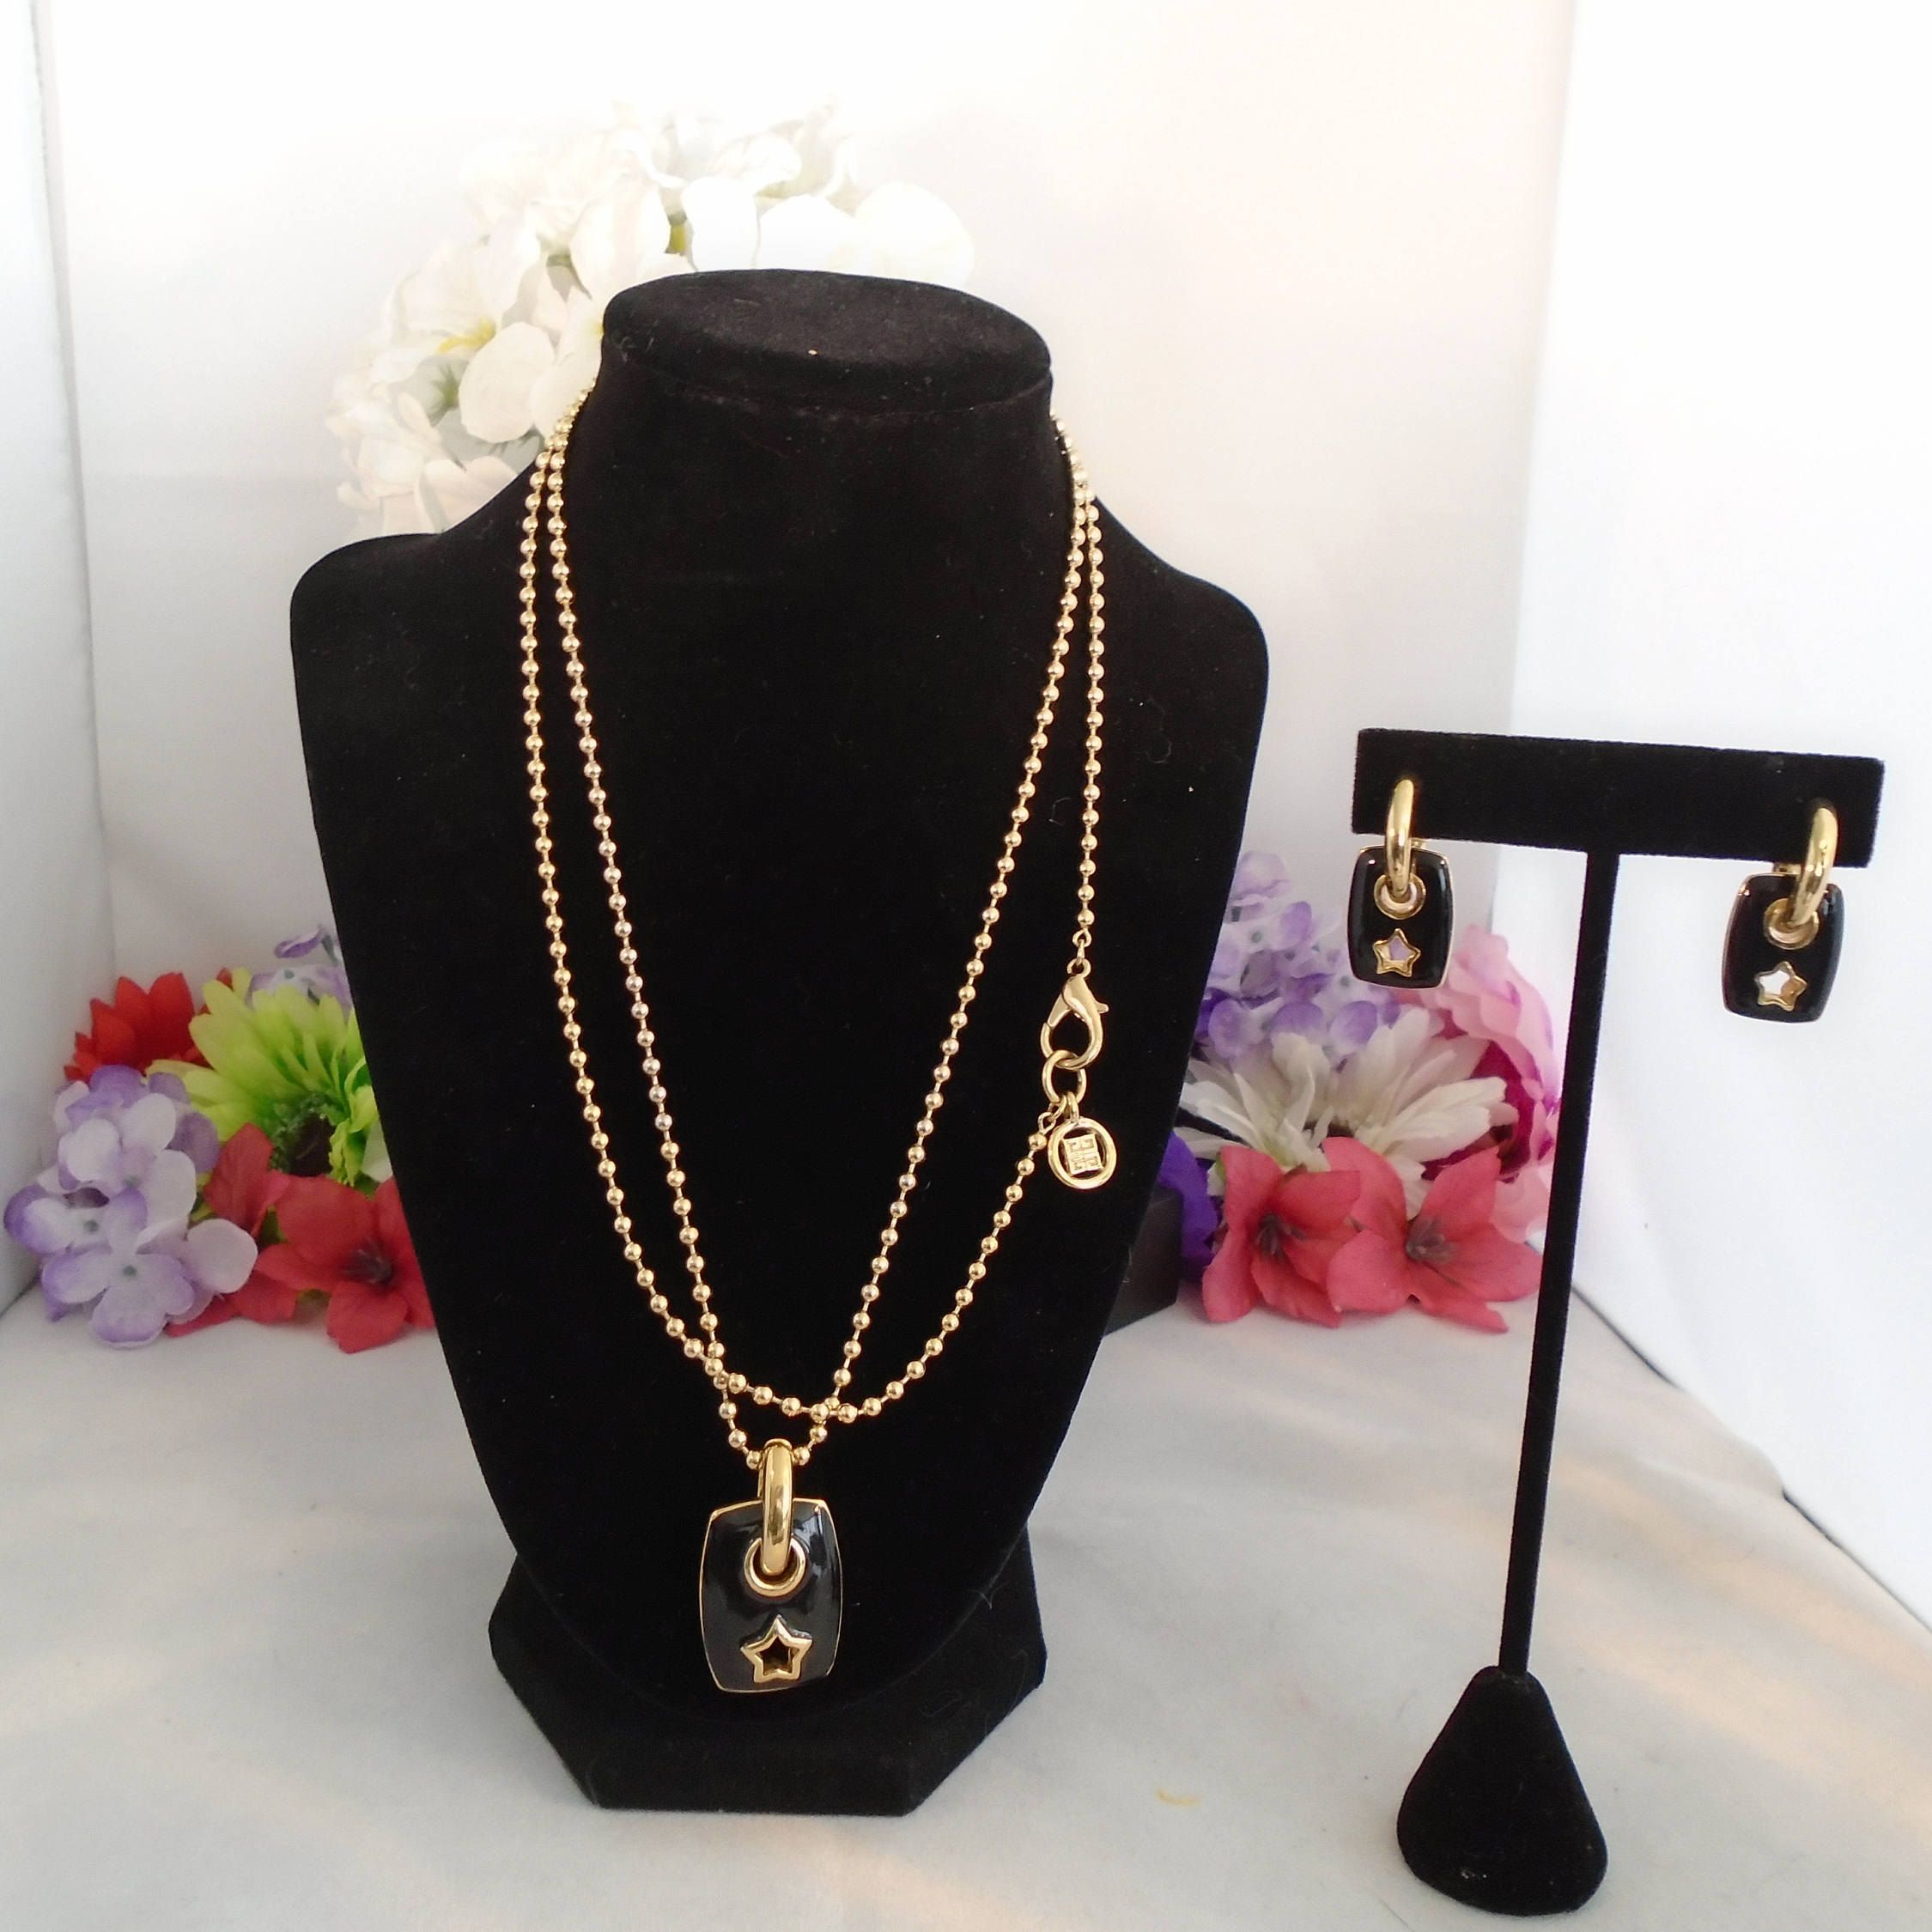 Vintage givenchy black and gold jewelry set beaded gold chain with